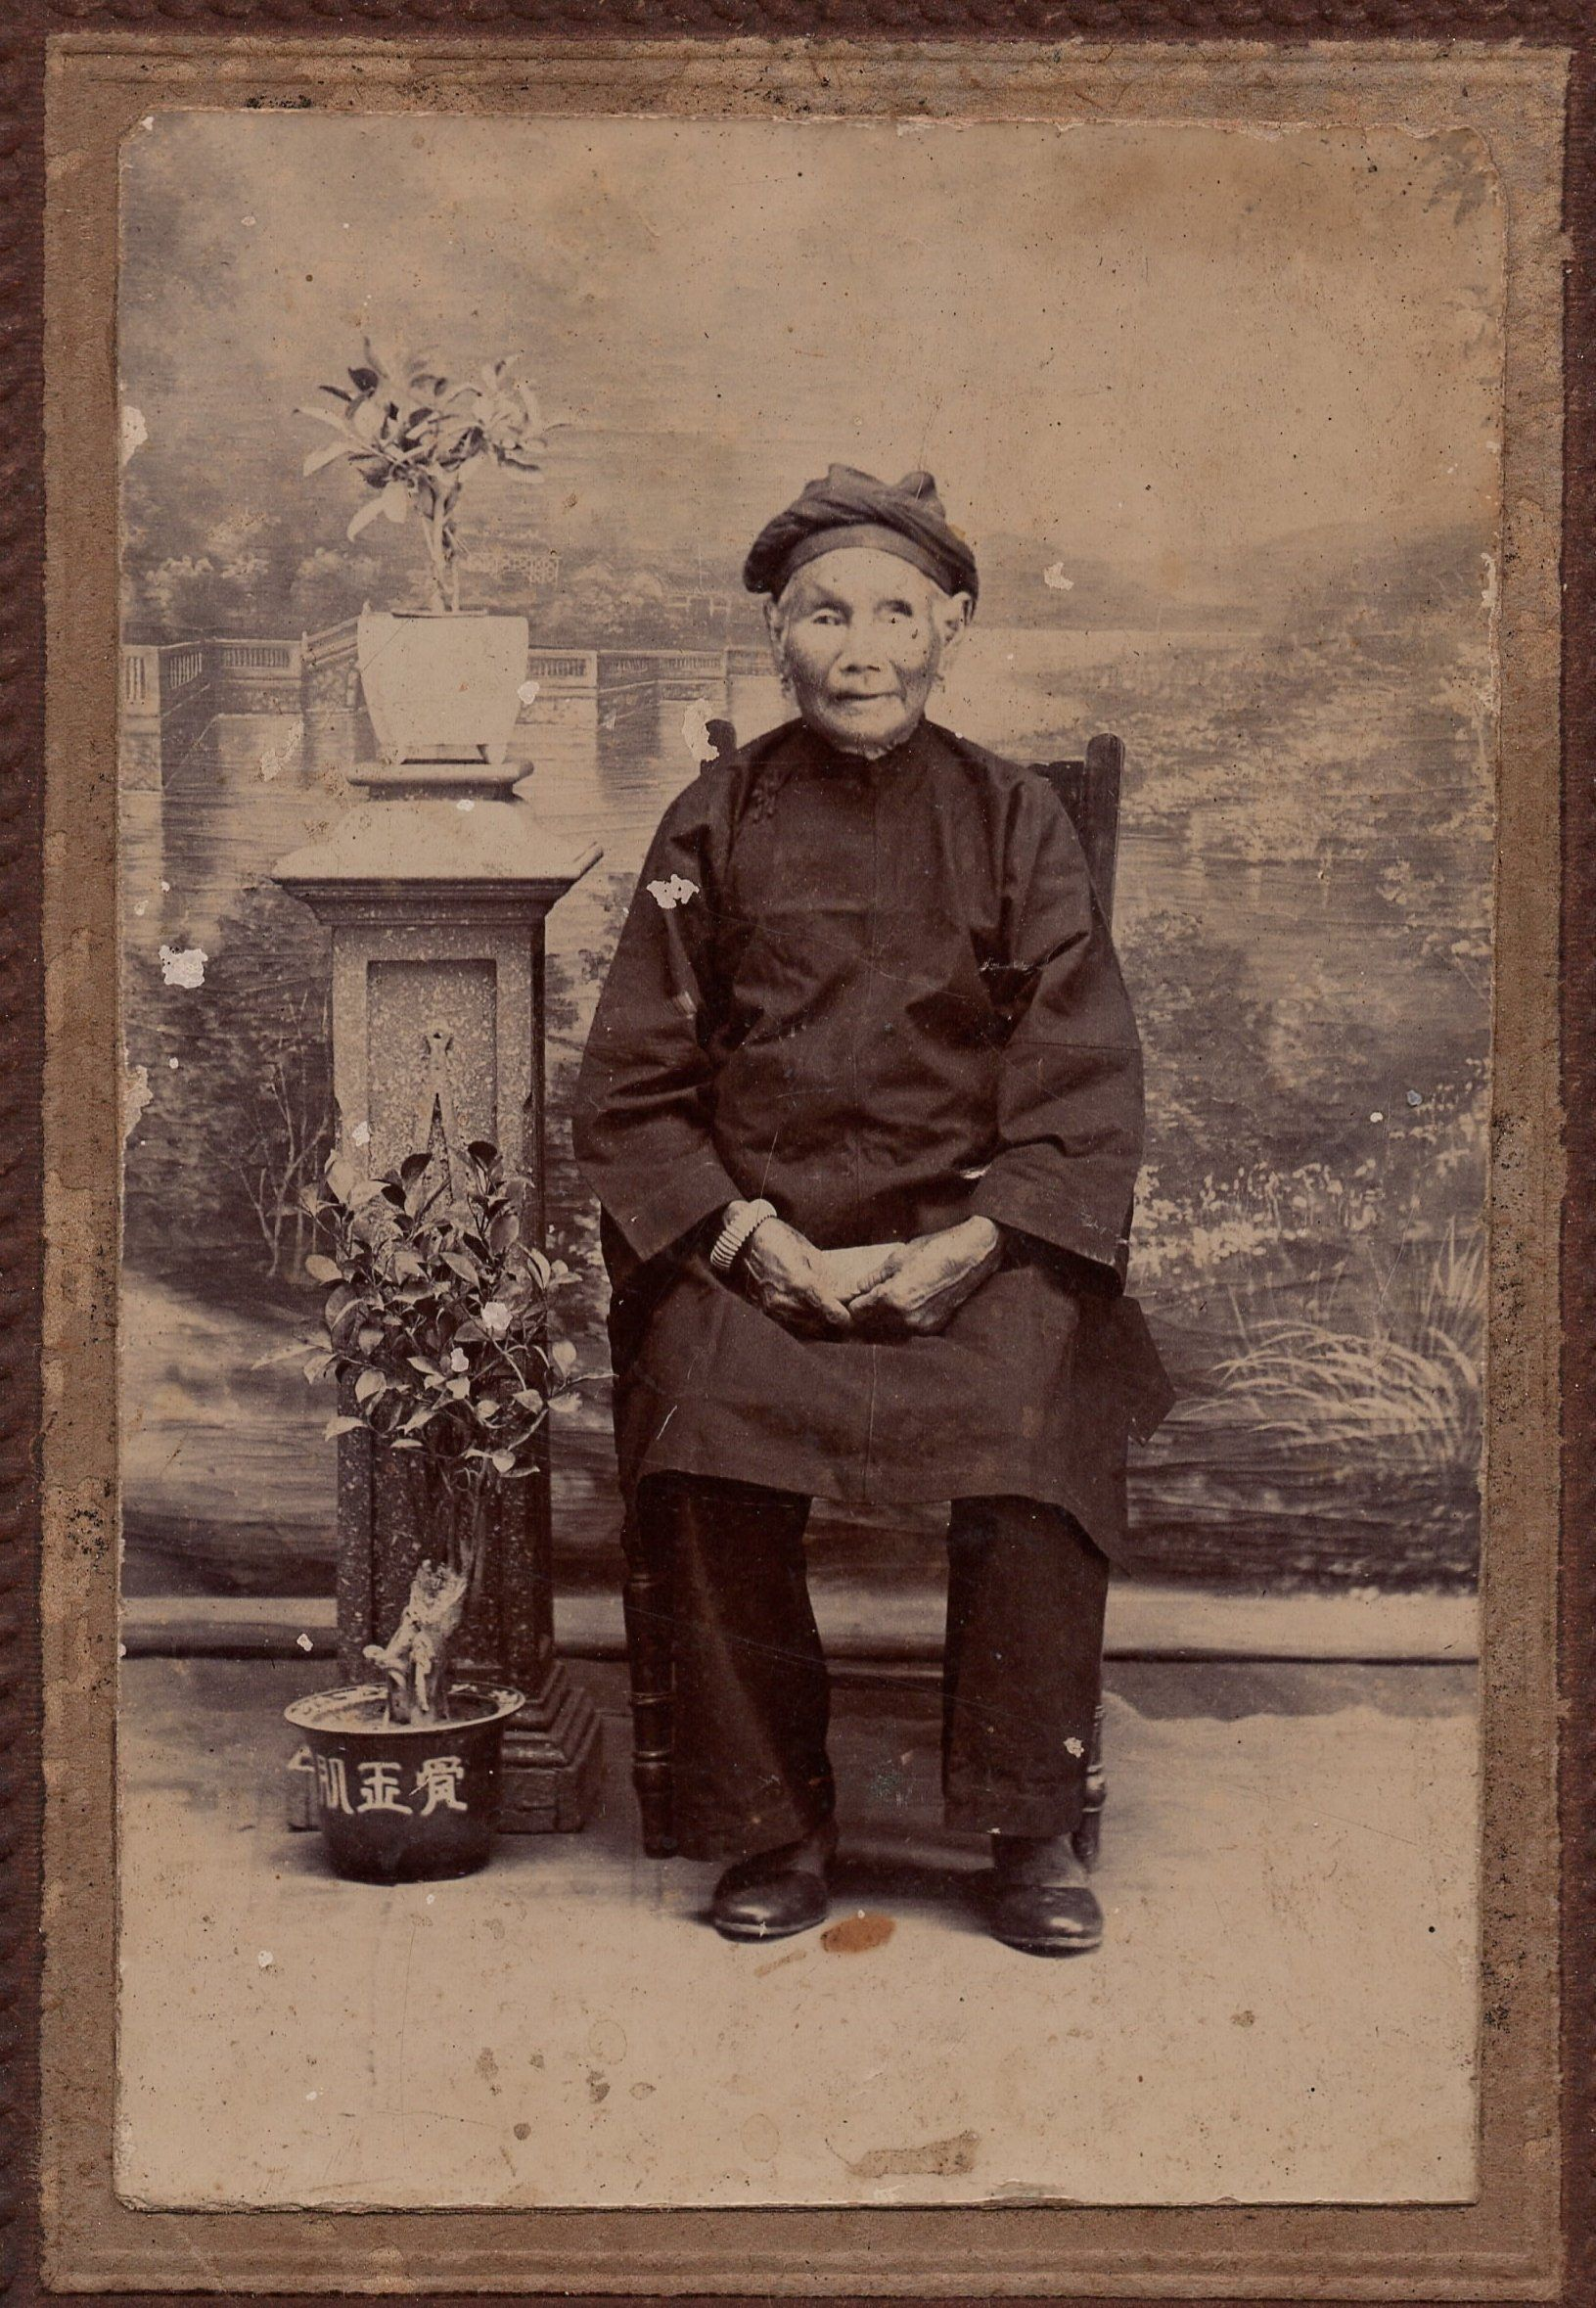 1890 Early Chinese Carte De Visite Portrait Photograph Black White Photo China Late Qing Photography Antiques 19thCentury